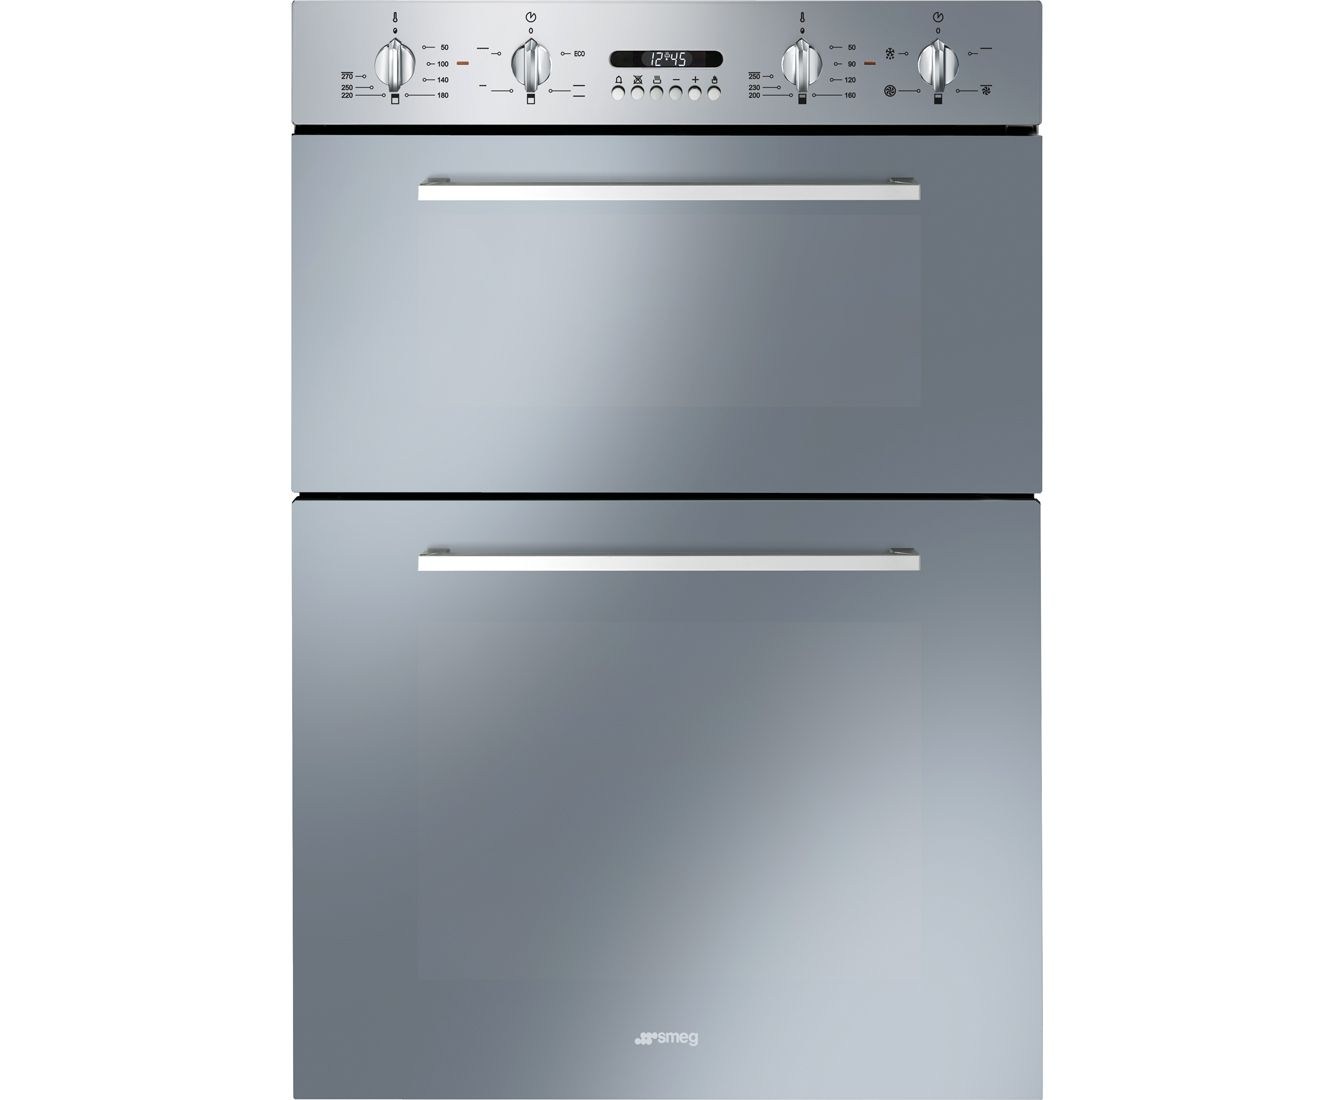 smeg cucina built in electric double oven   dosf44x   ao com smeg cucina built in electric double oven   dosf44x   ao com   new      rh   pinterest com